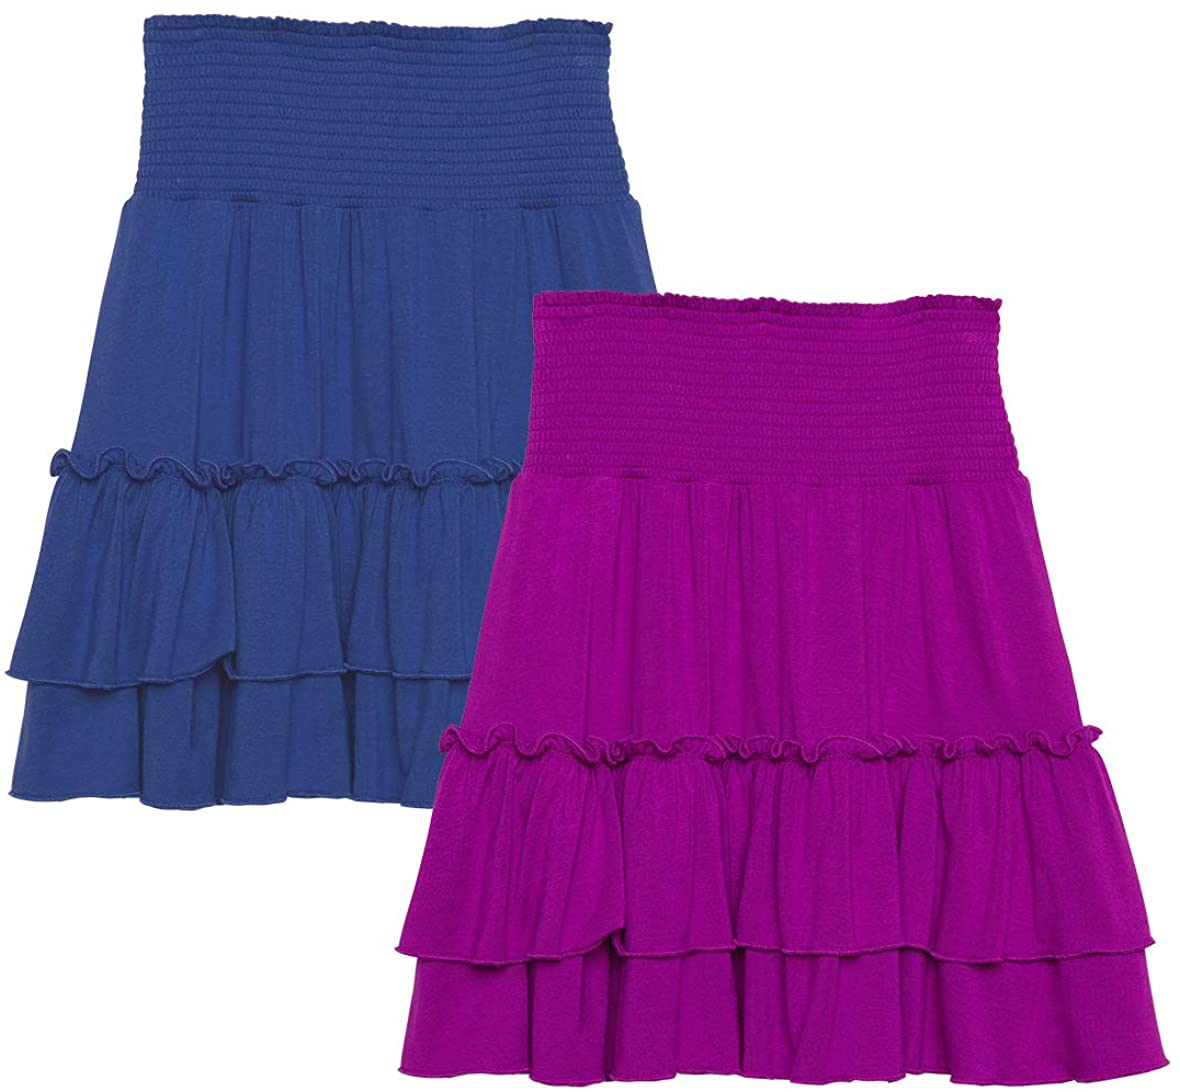 KIDPIK 2-Pack Smock Tiered Skirts - Knee Length Skirt for Girls 4 Years & Up - Comfy Modest Clothing - 2 Colors/Set: Clothing